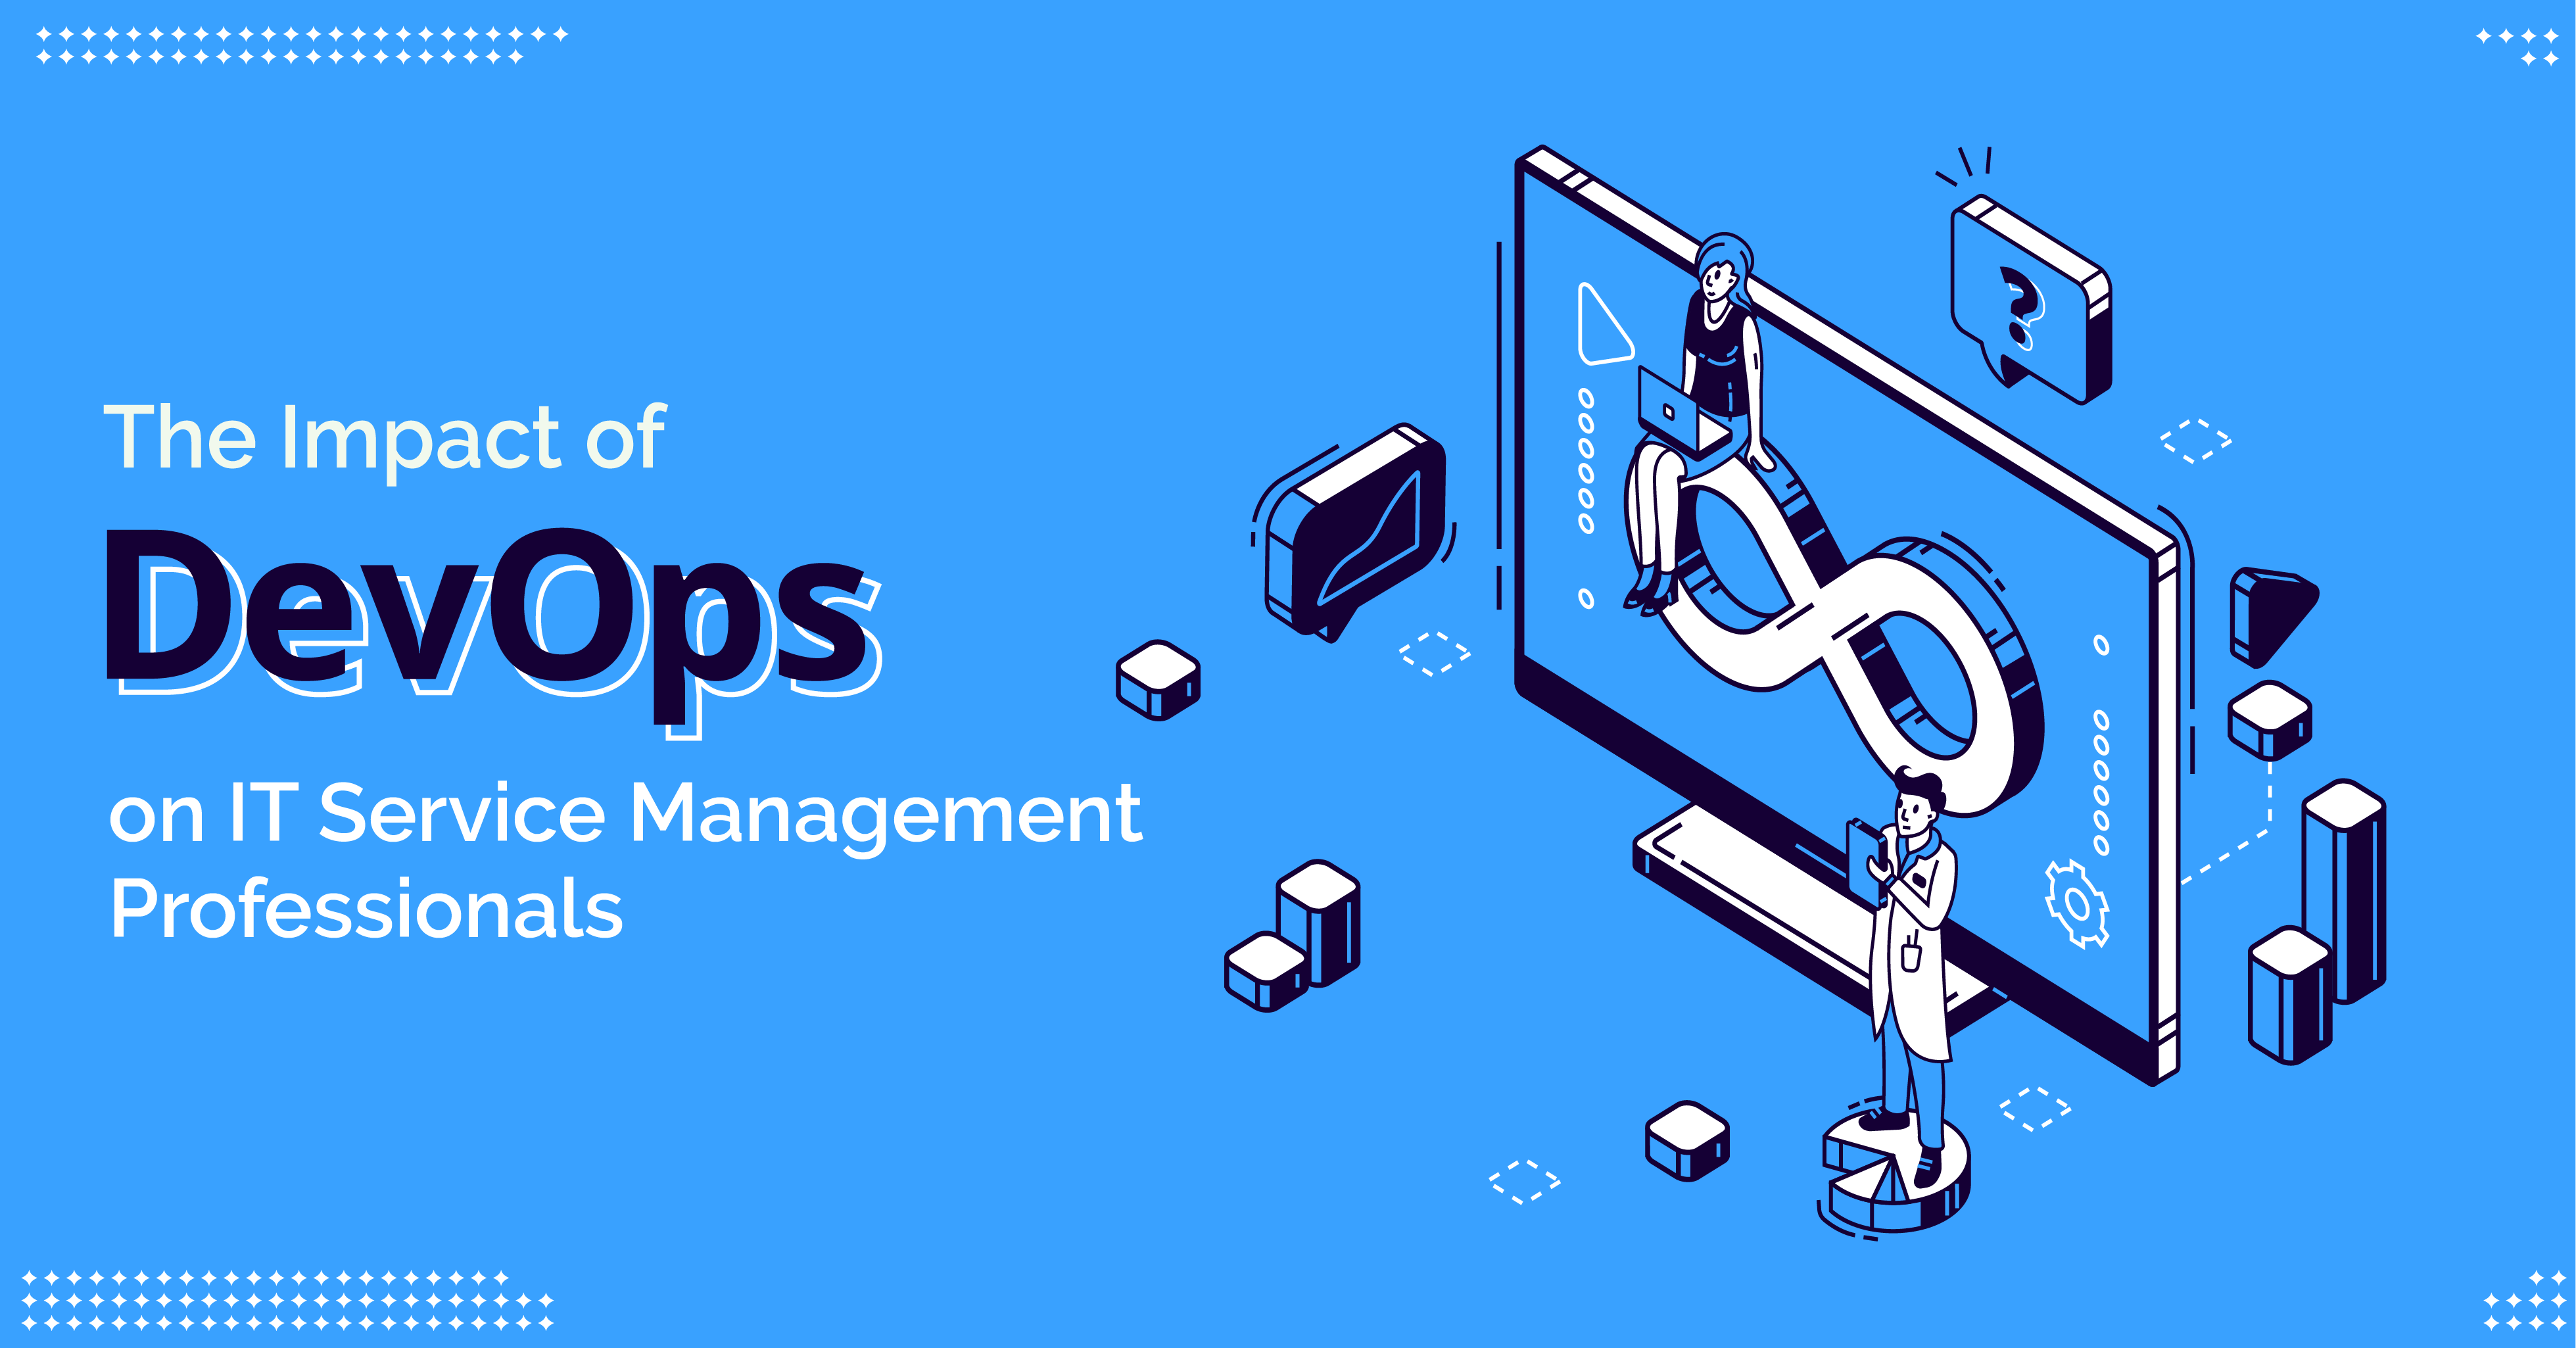 the-impact-of-devops-on-it-service-management-professionals